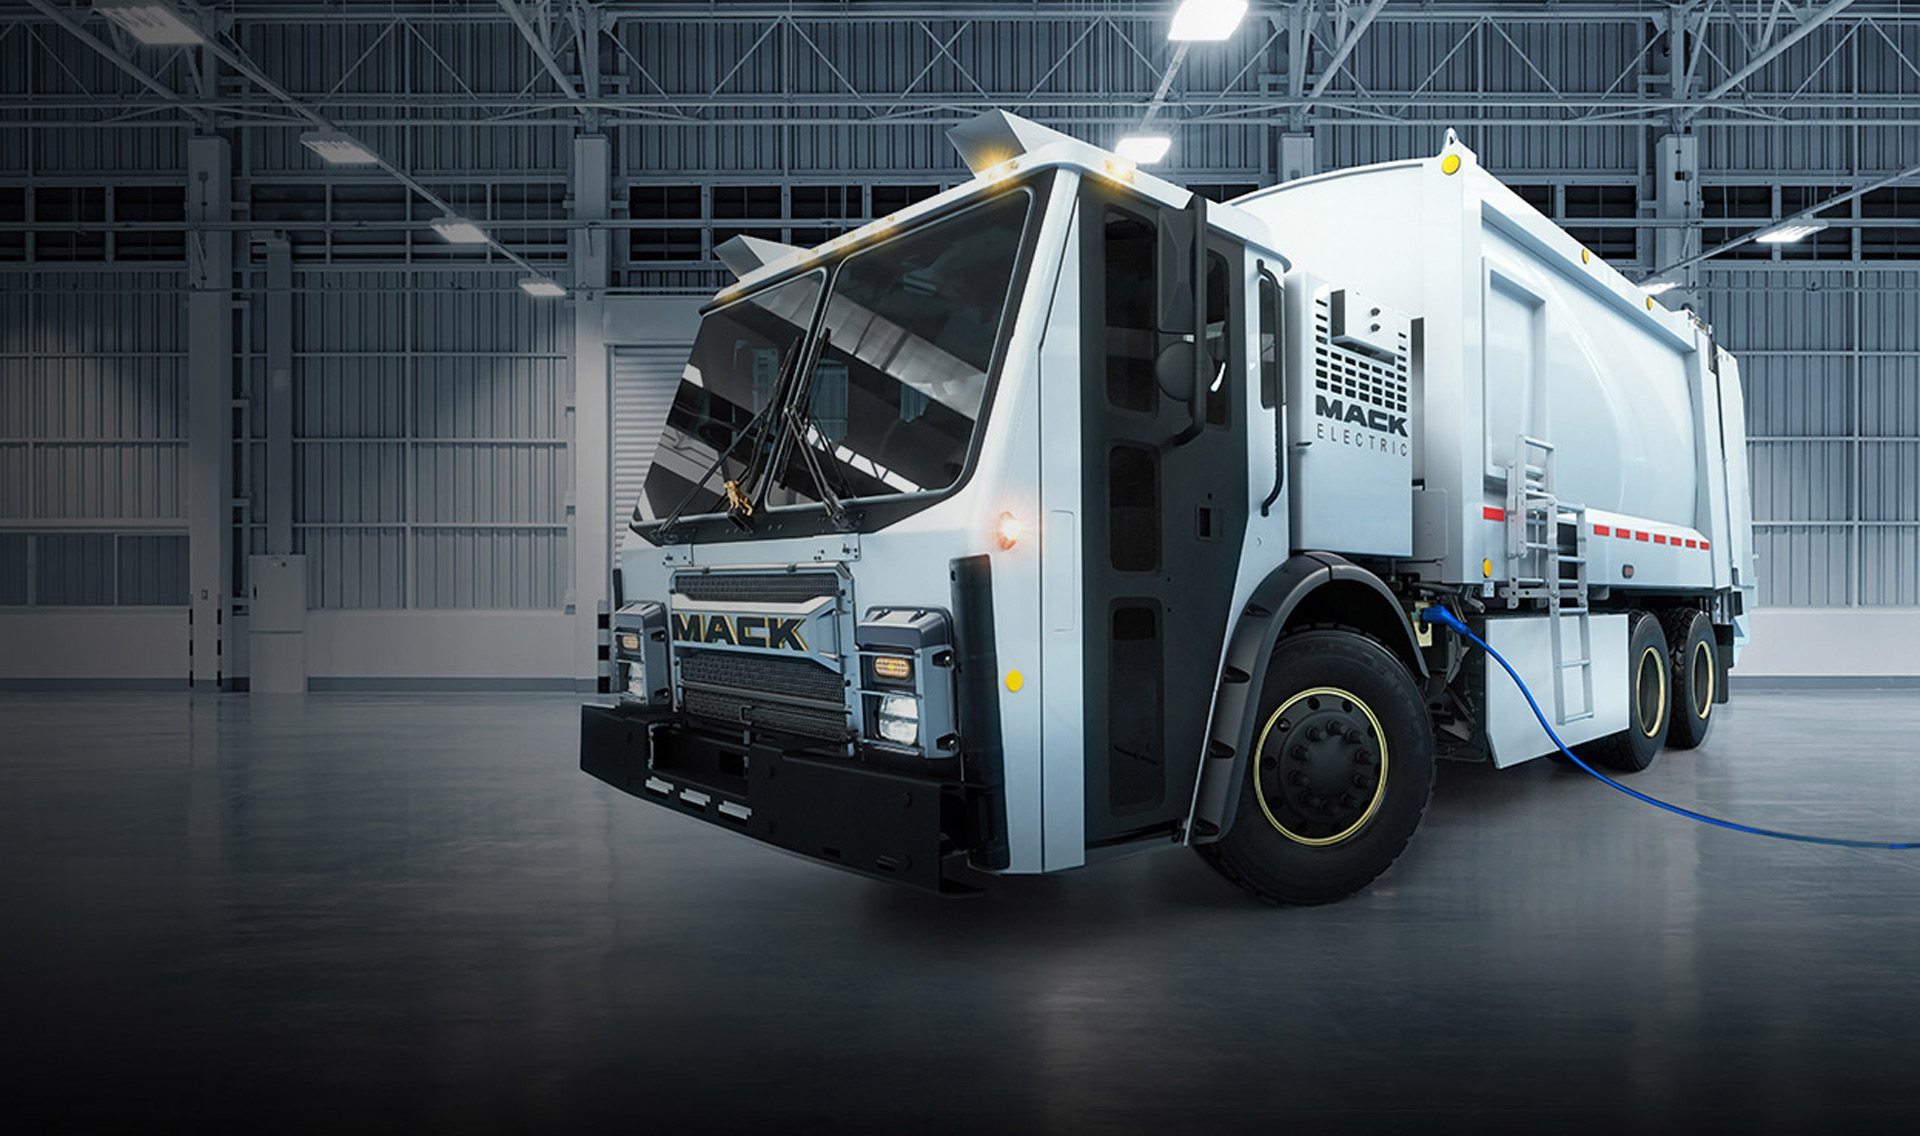 Mack plans to send electric trucks to the garbage dump